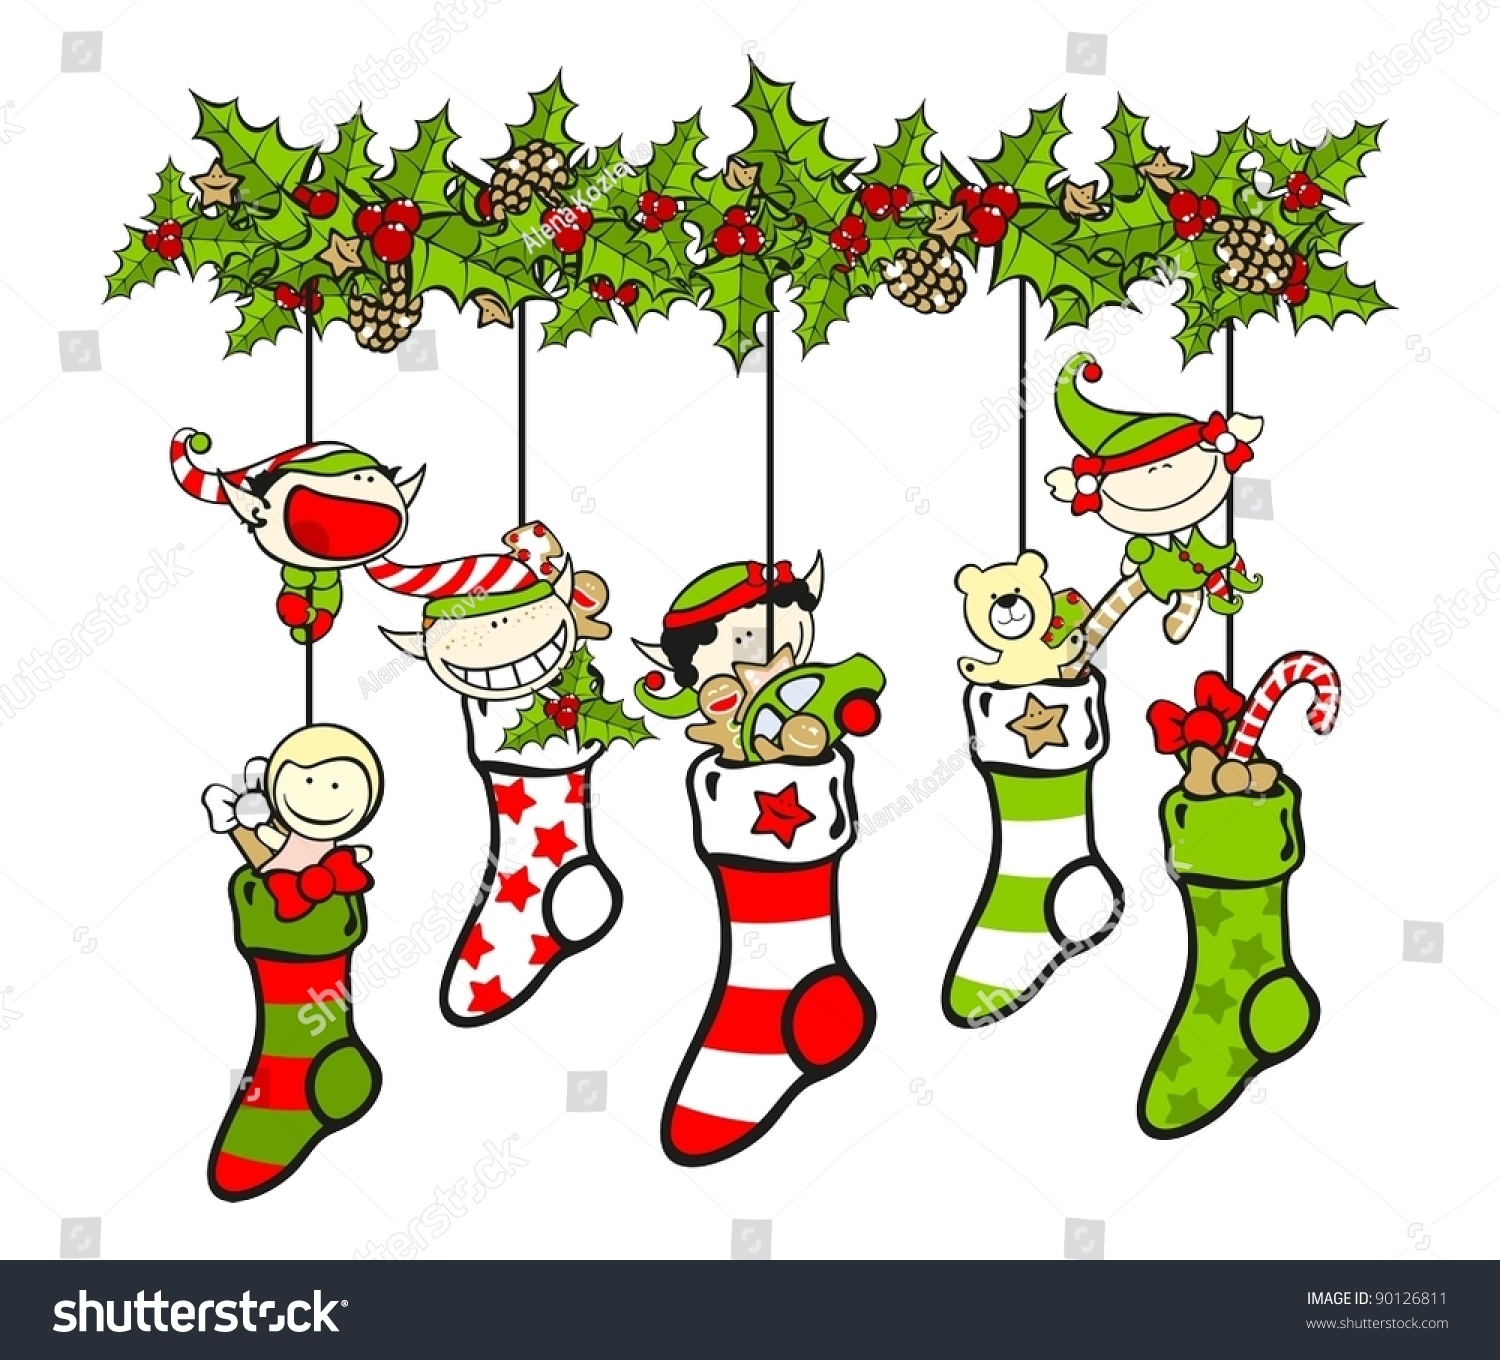 Christmas Stockings Clipart Free Stock Vector Christmas Stockings Filled With Presents And